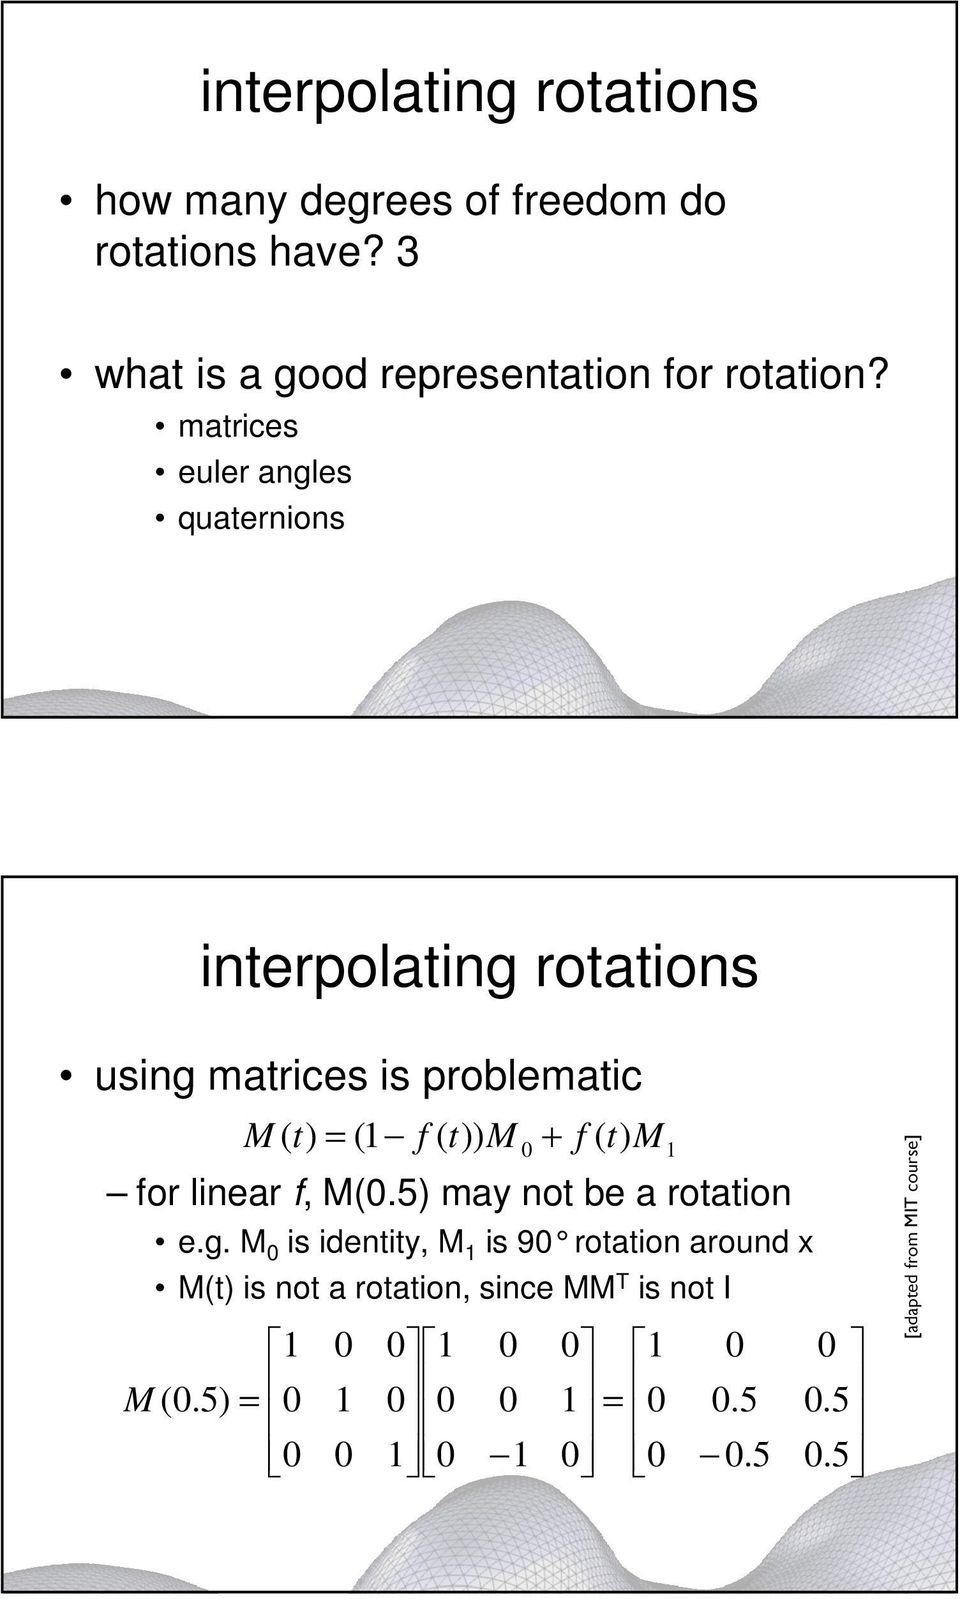 t) for linear f, M(0.5) may not be a rotation e.g.